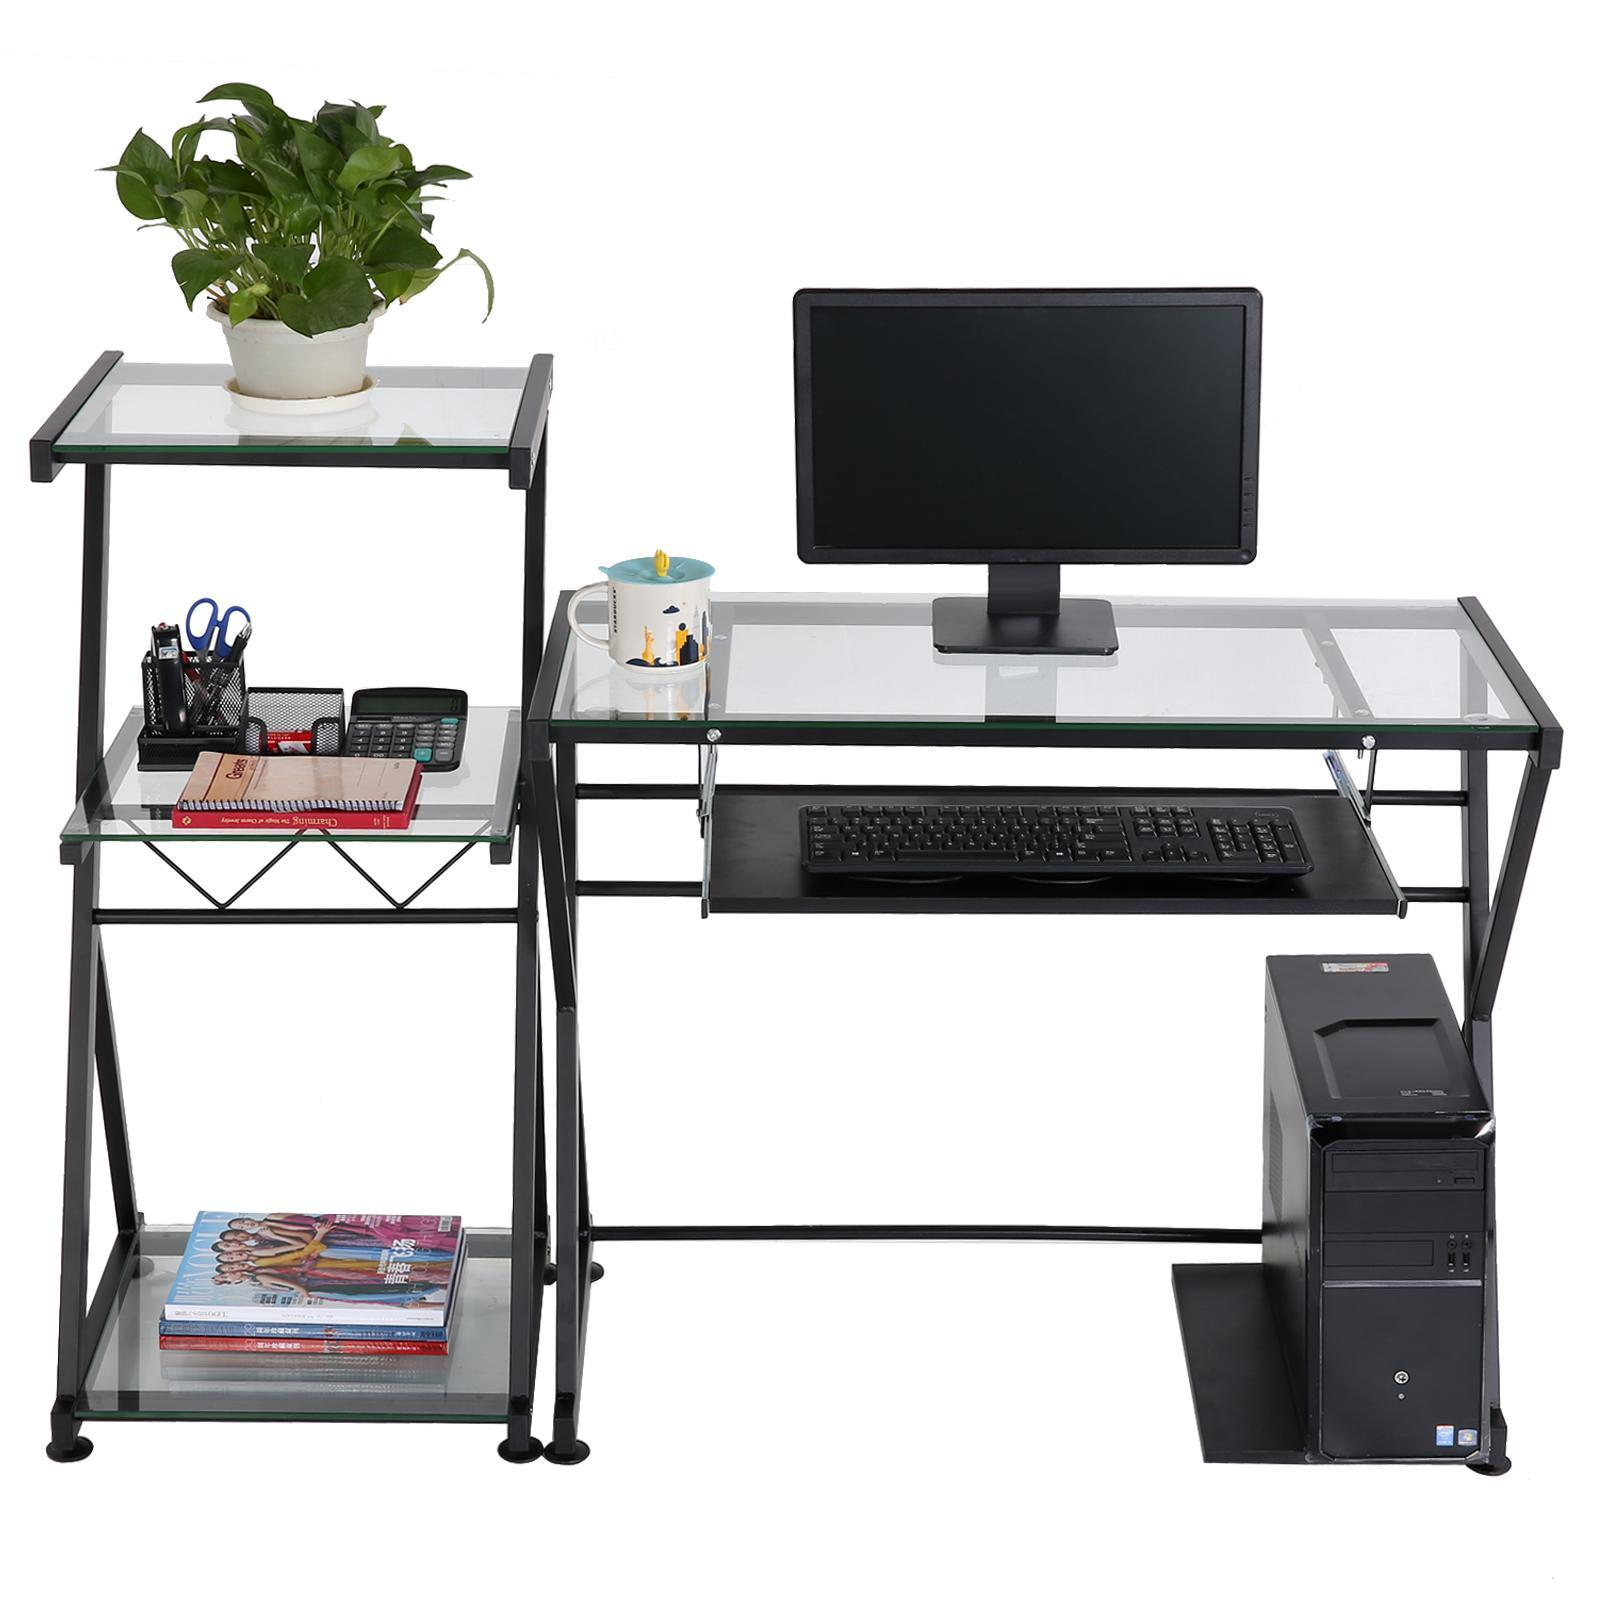 Homdox Computer Cart Compact Rolling Laptop Table Desk